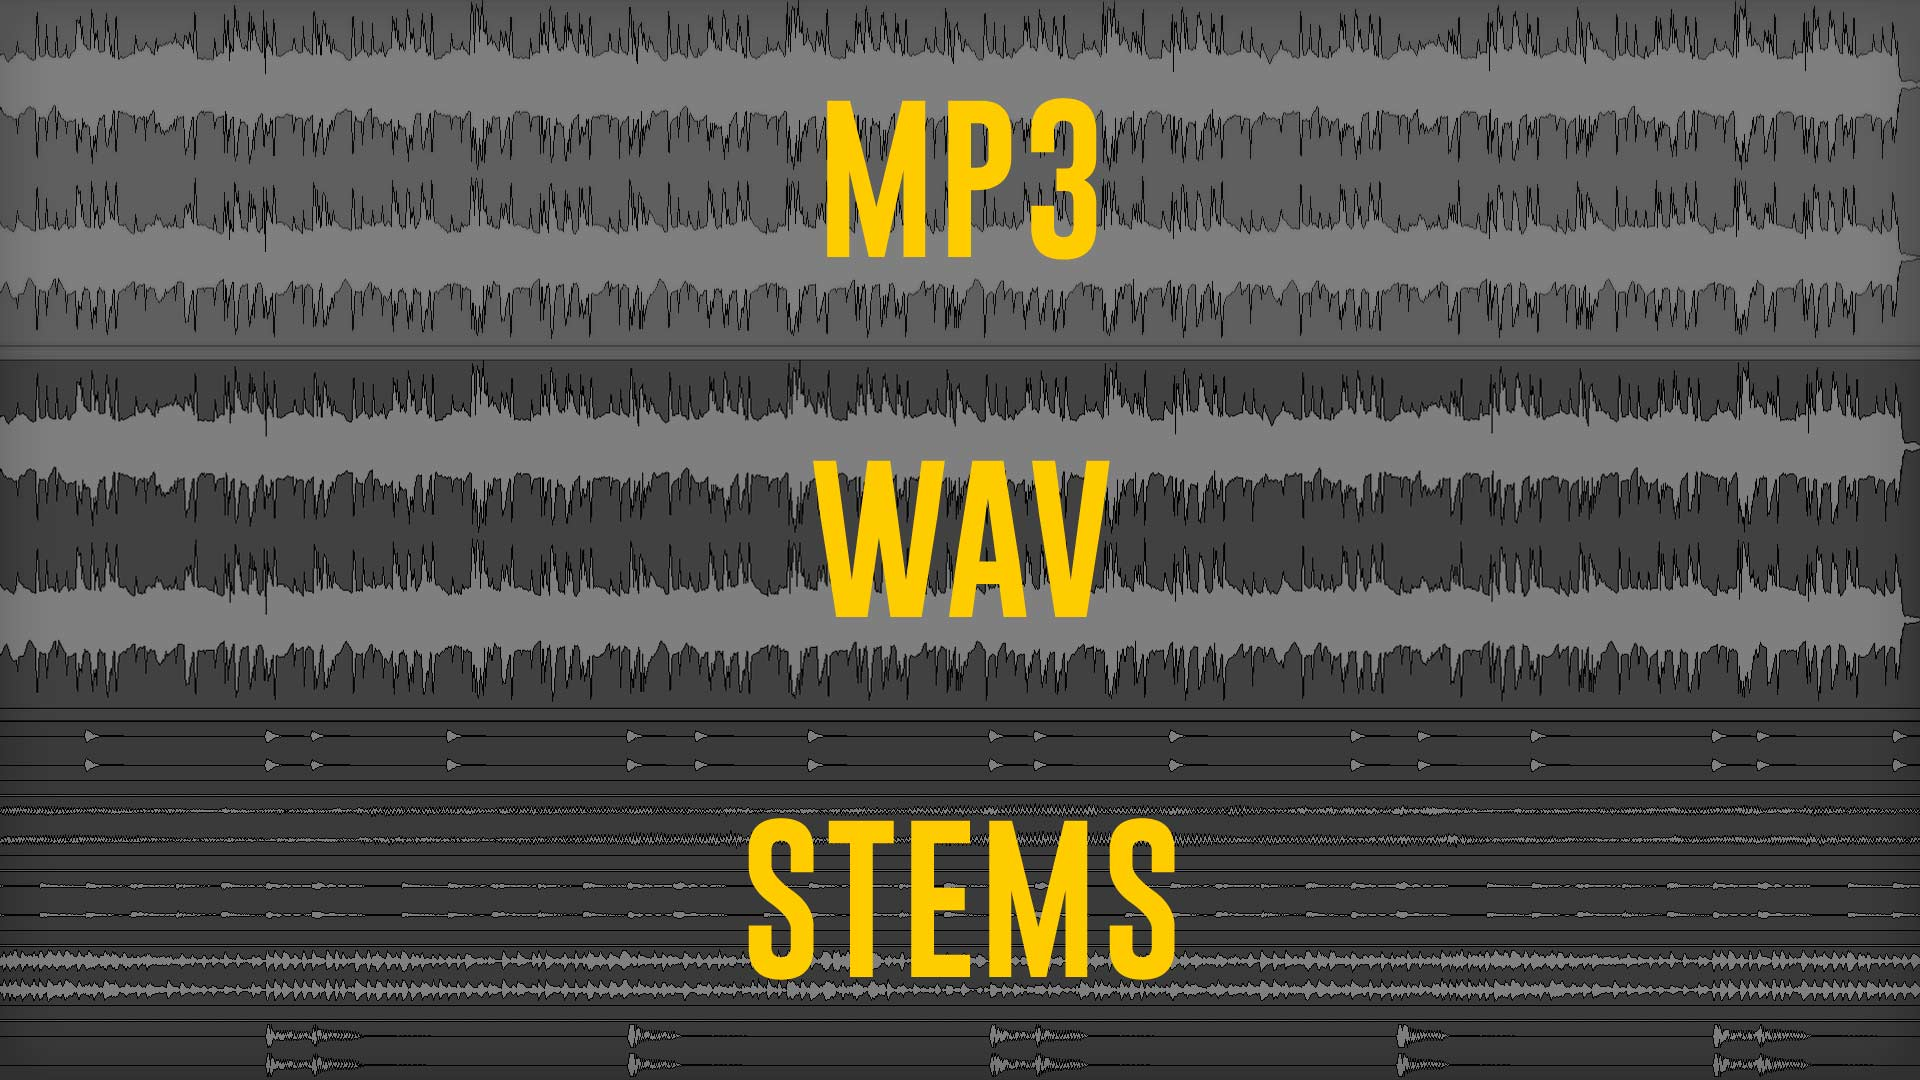 Blog - Mp3 Wav Stems - 1920x1080